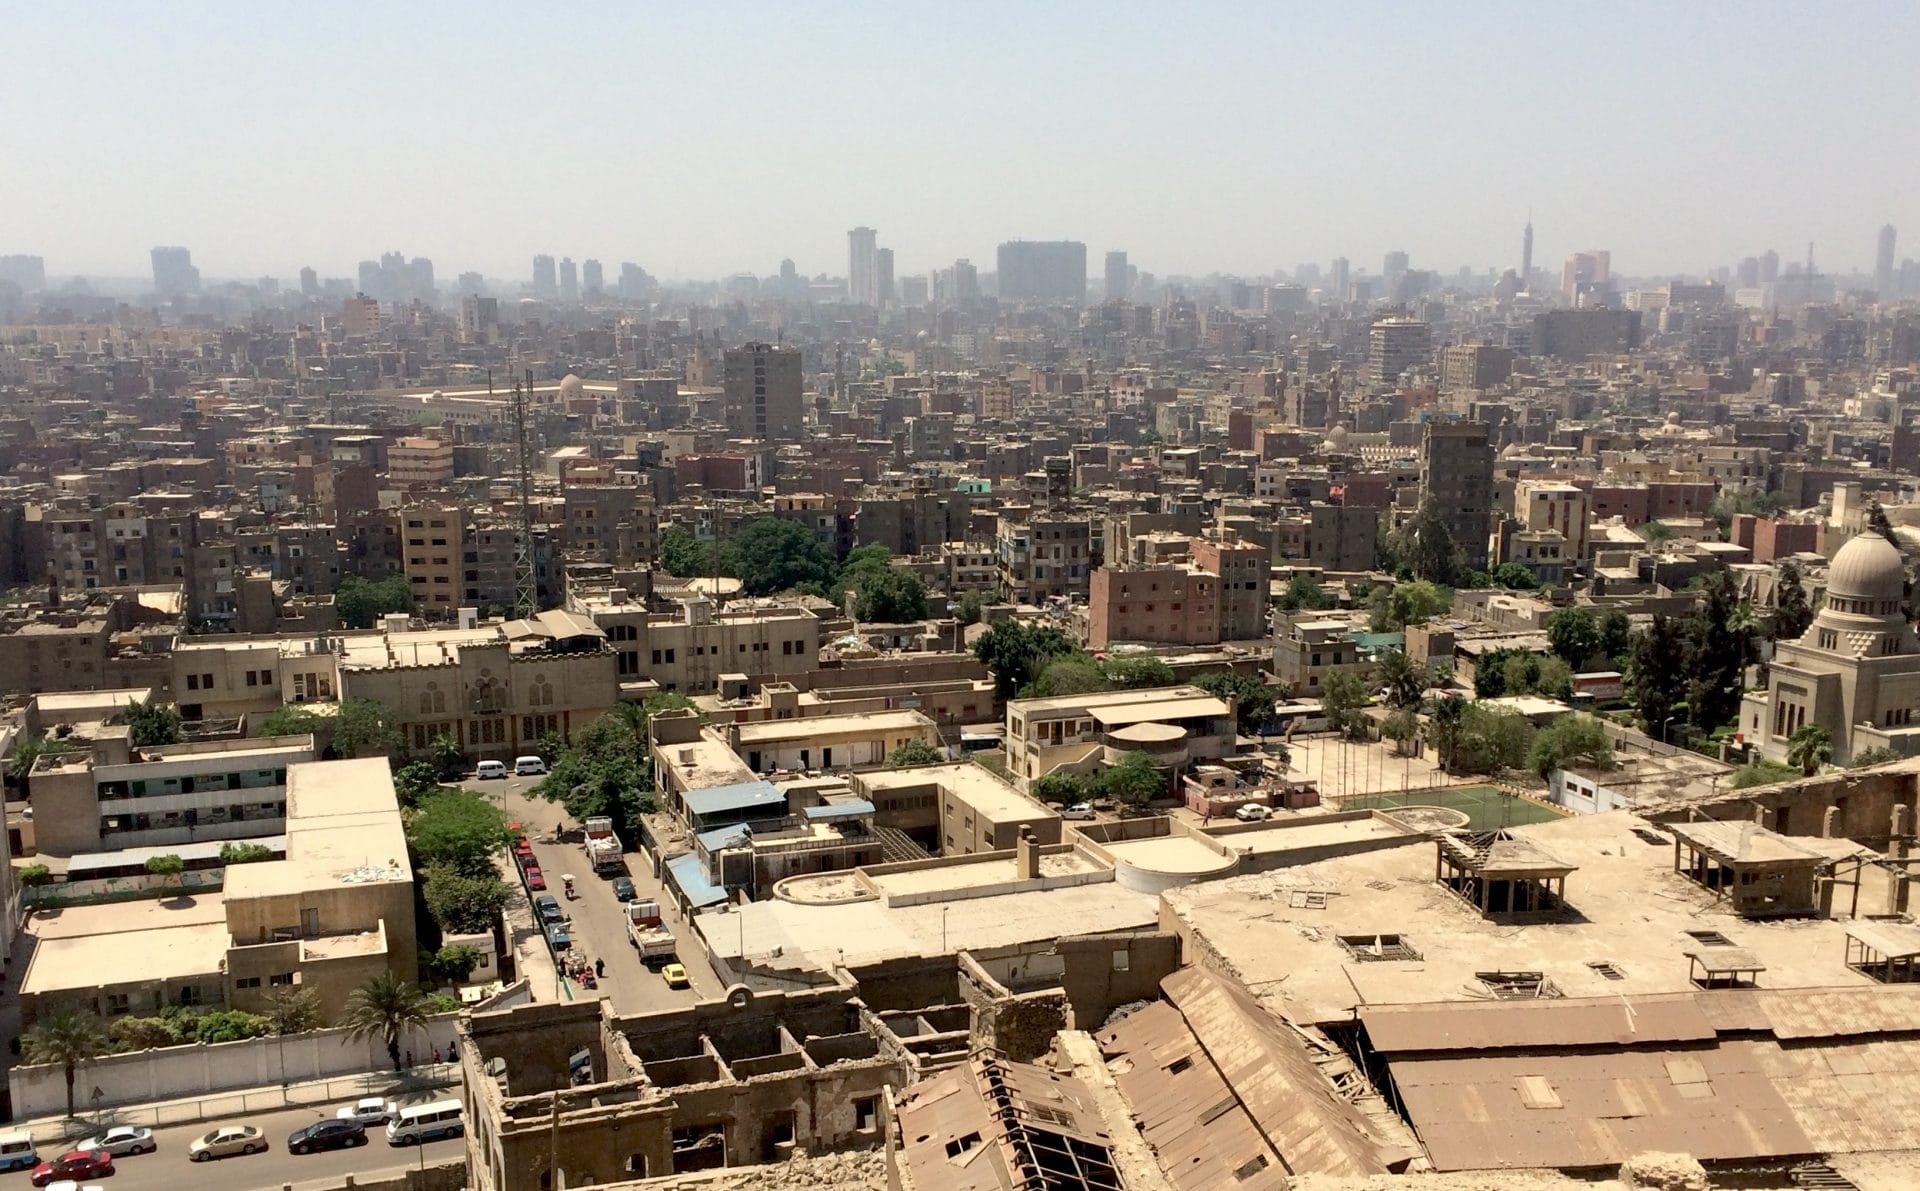 Cairo, Egypt - © Photo: Hakim Khatib/MPC Journal - Egypt's Economic Pain Is All in a Good Cause